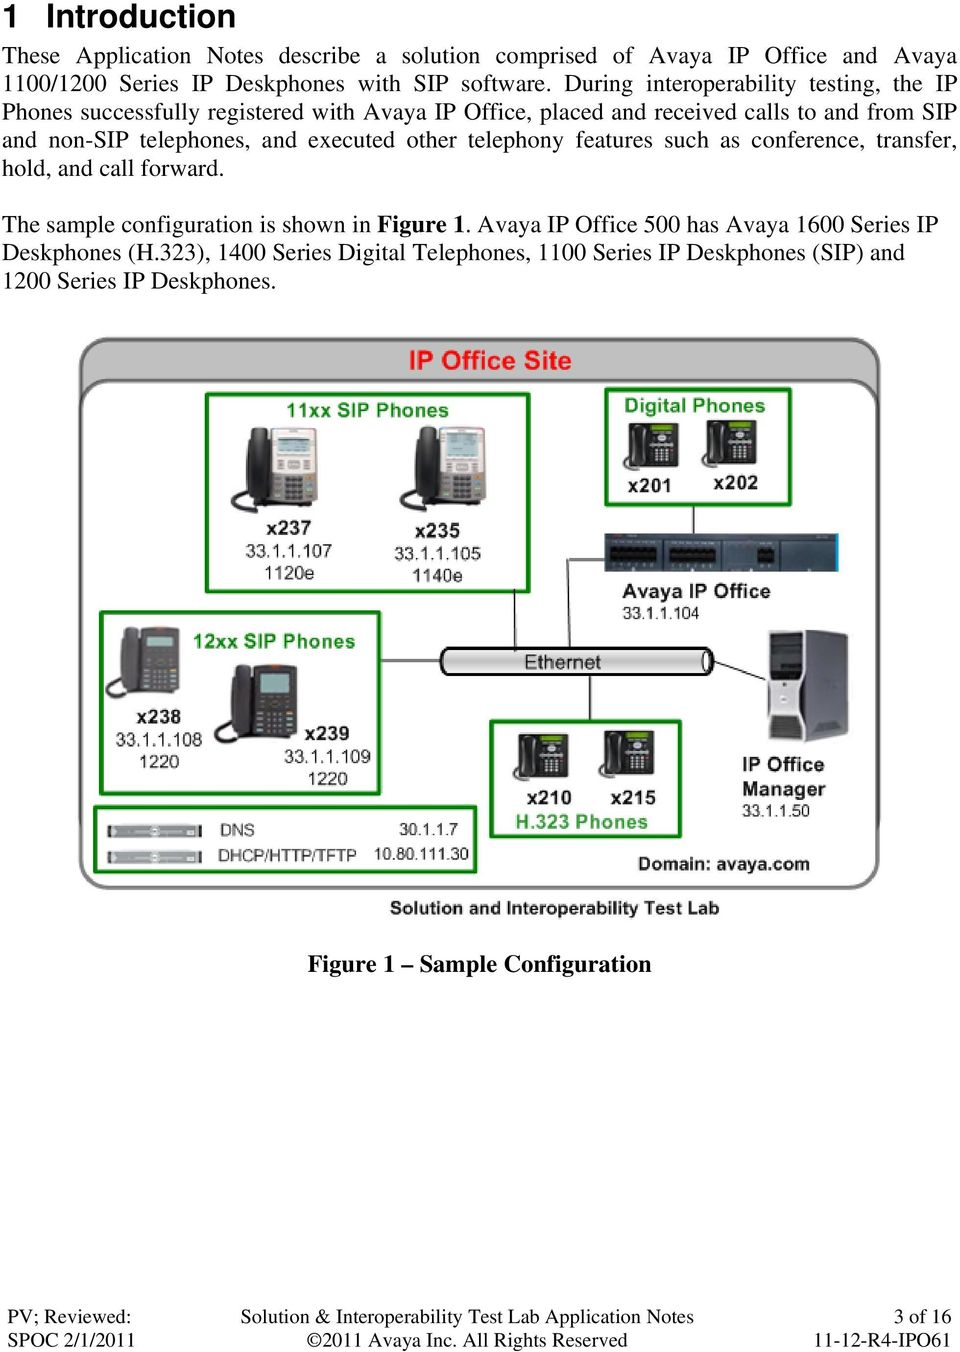 and executed other telephony features such as conference, transfer, hold, and call forward. The sample configuration is shown in Figure 1.